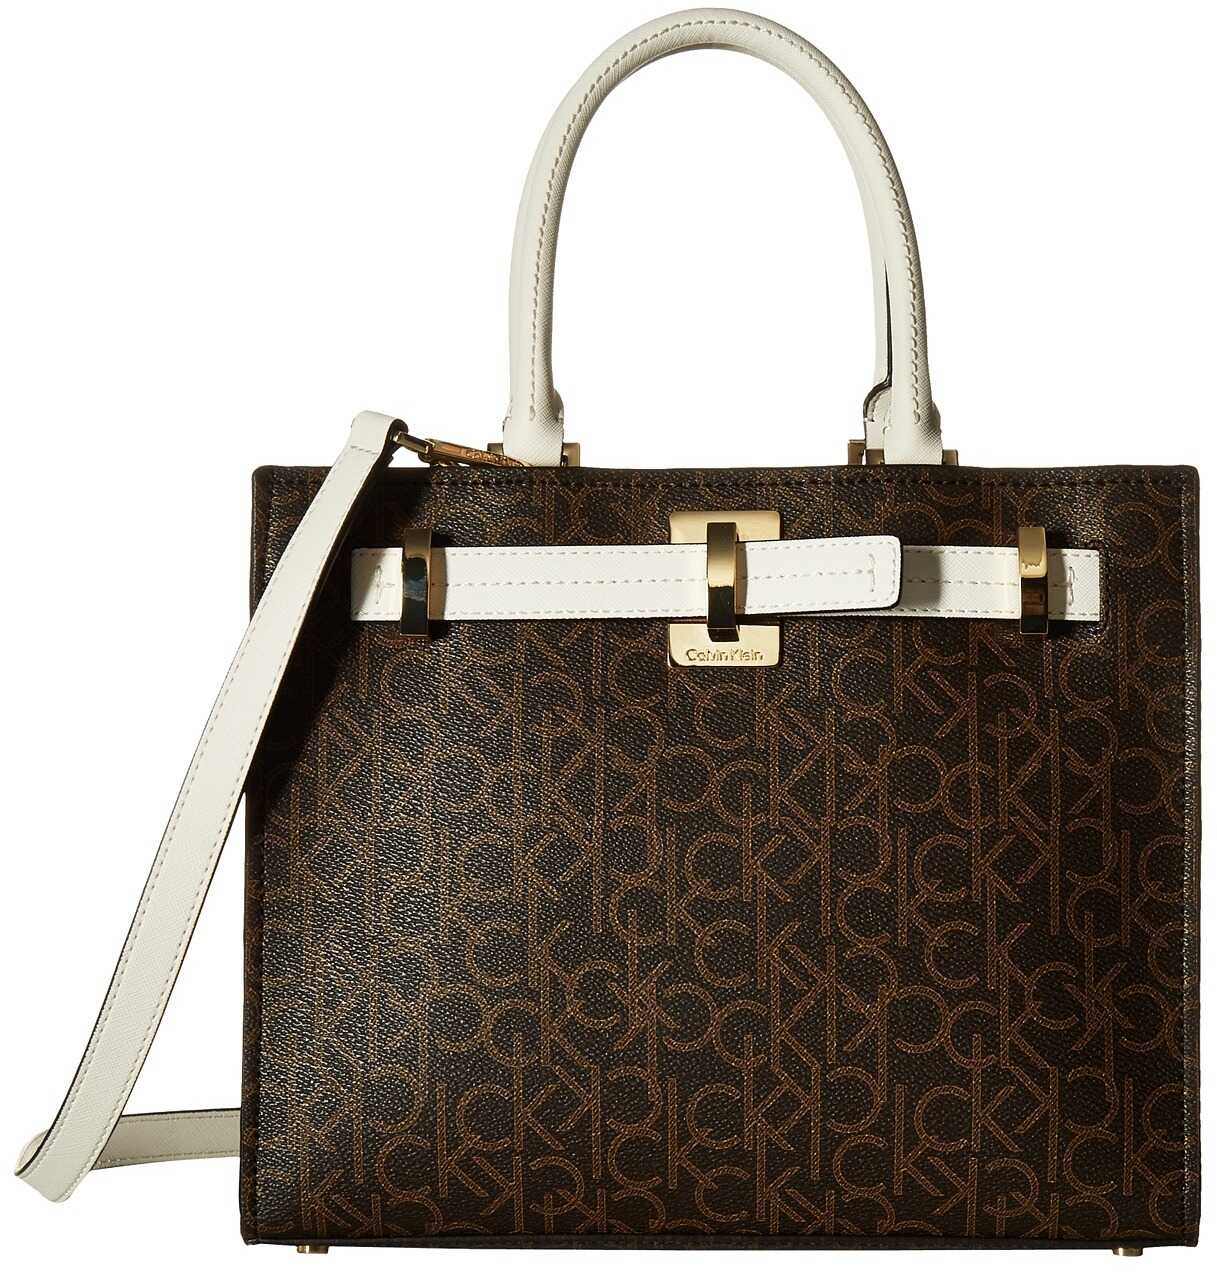 Calvin Klein Faye Monogram Satchel Brown/Khaki/White